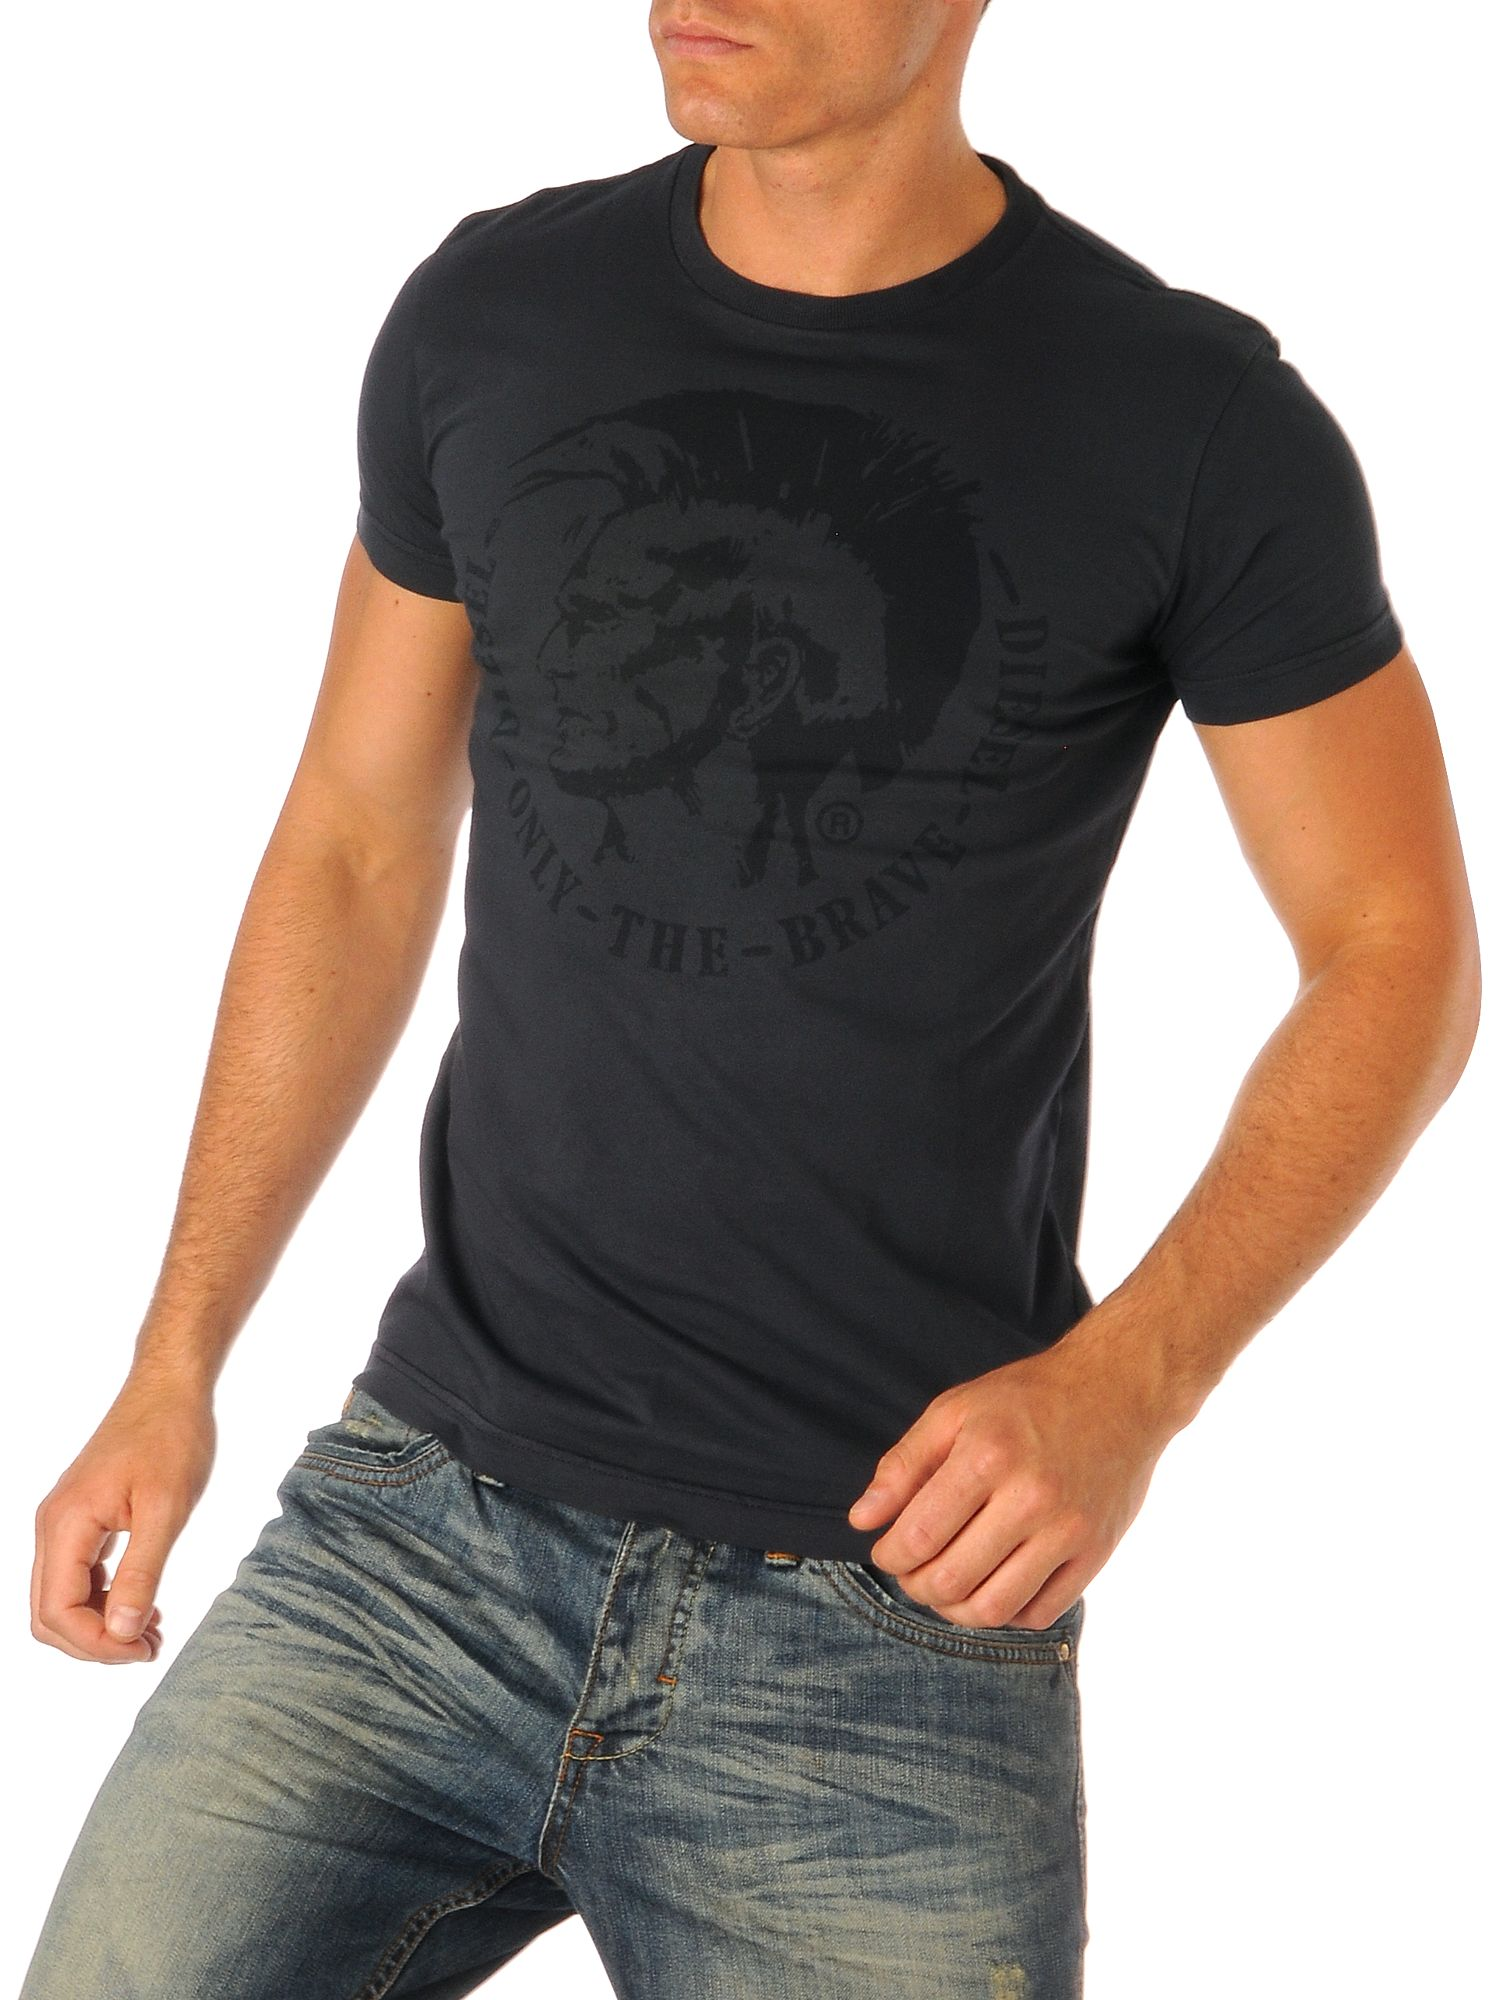 Diesel T-shirt mohican basic Navy product image